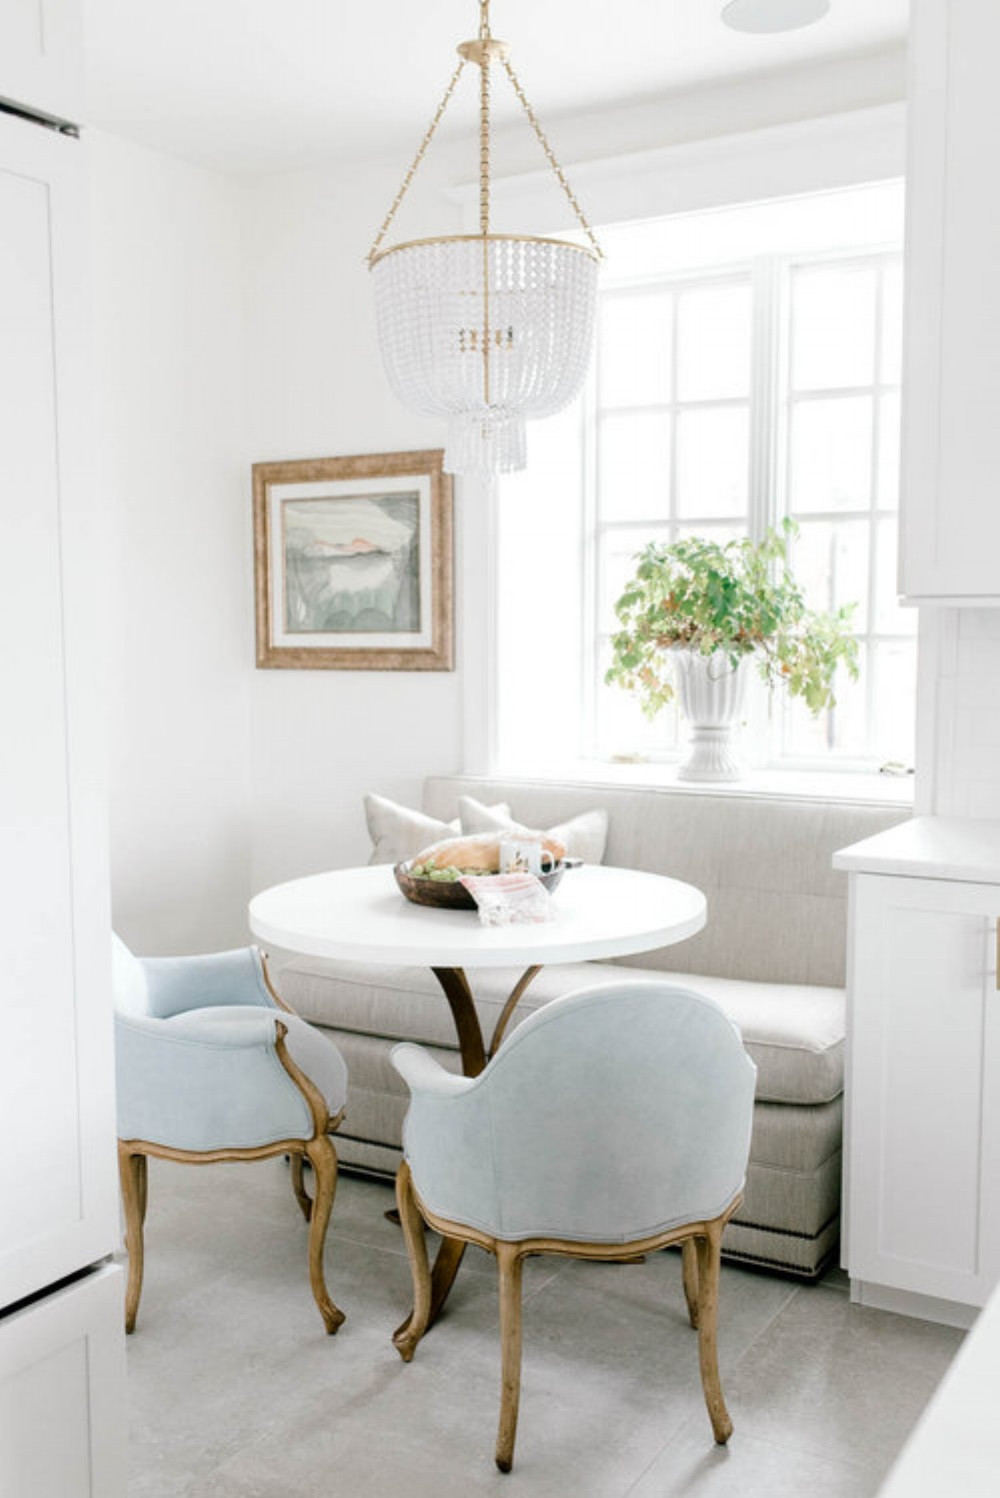 This Dining Nook Is The Definition Of Adorable I Love Pastel Blue Upholstered Chairs Along With Bench And Bistro Table Im A Big Fan Beaded